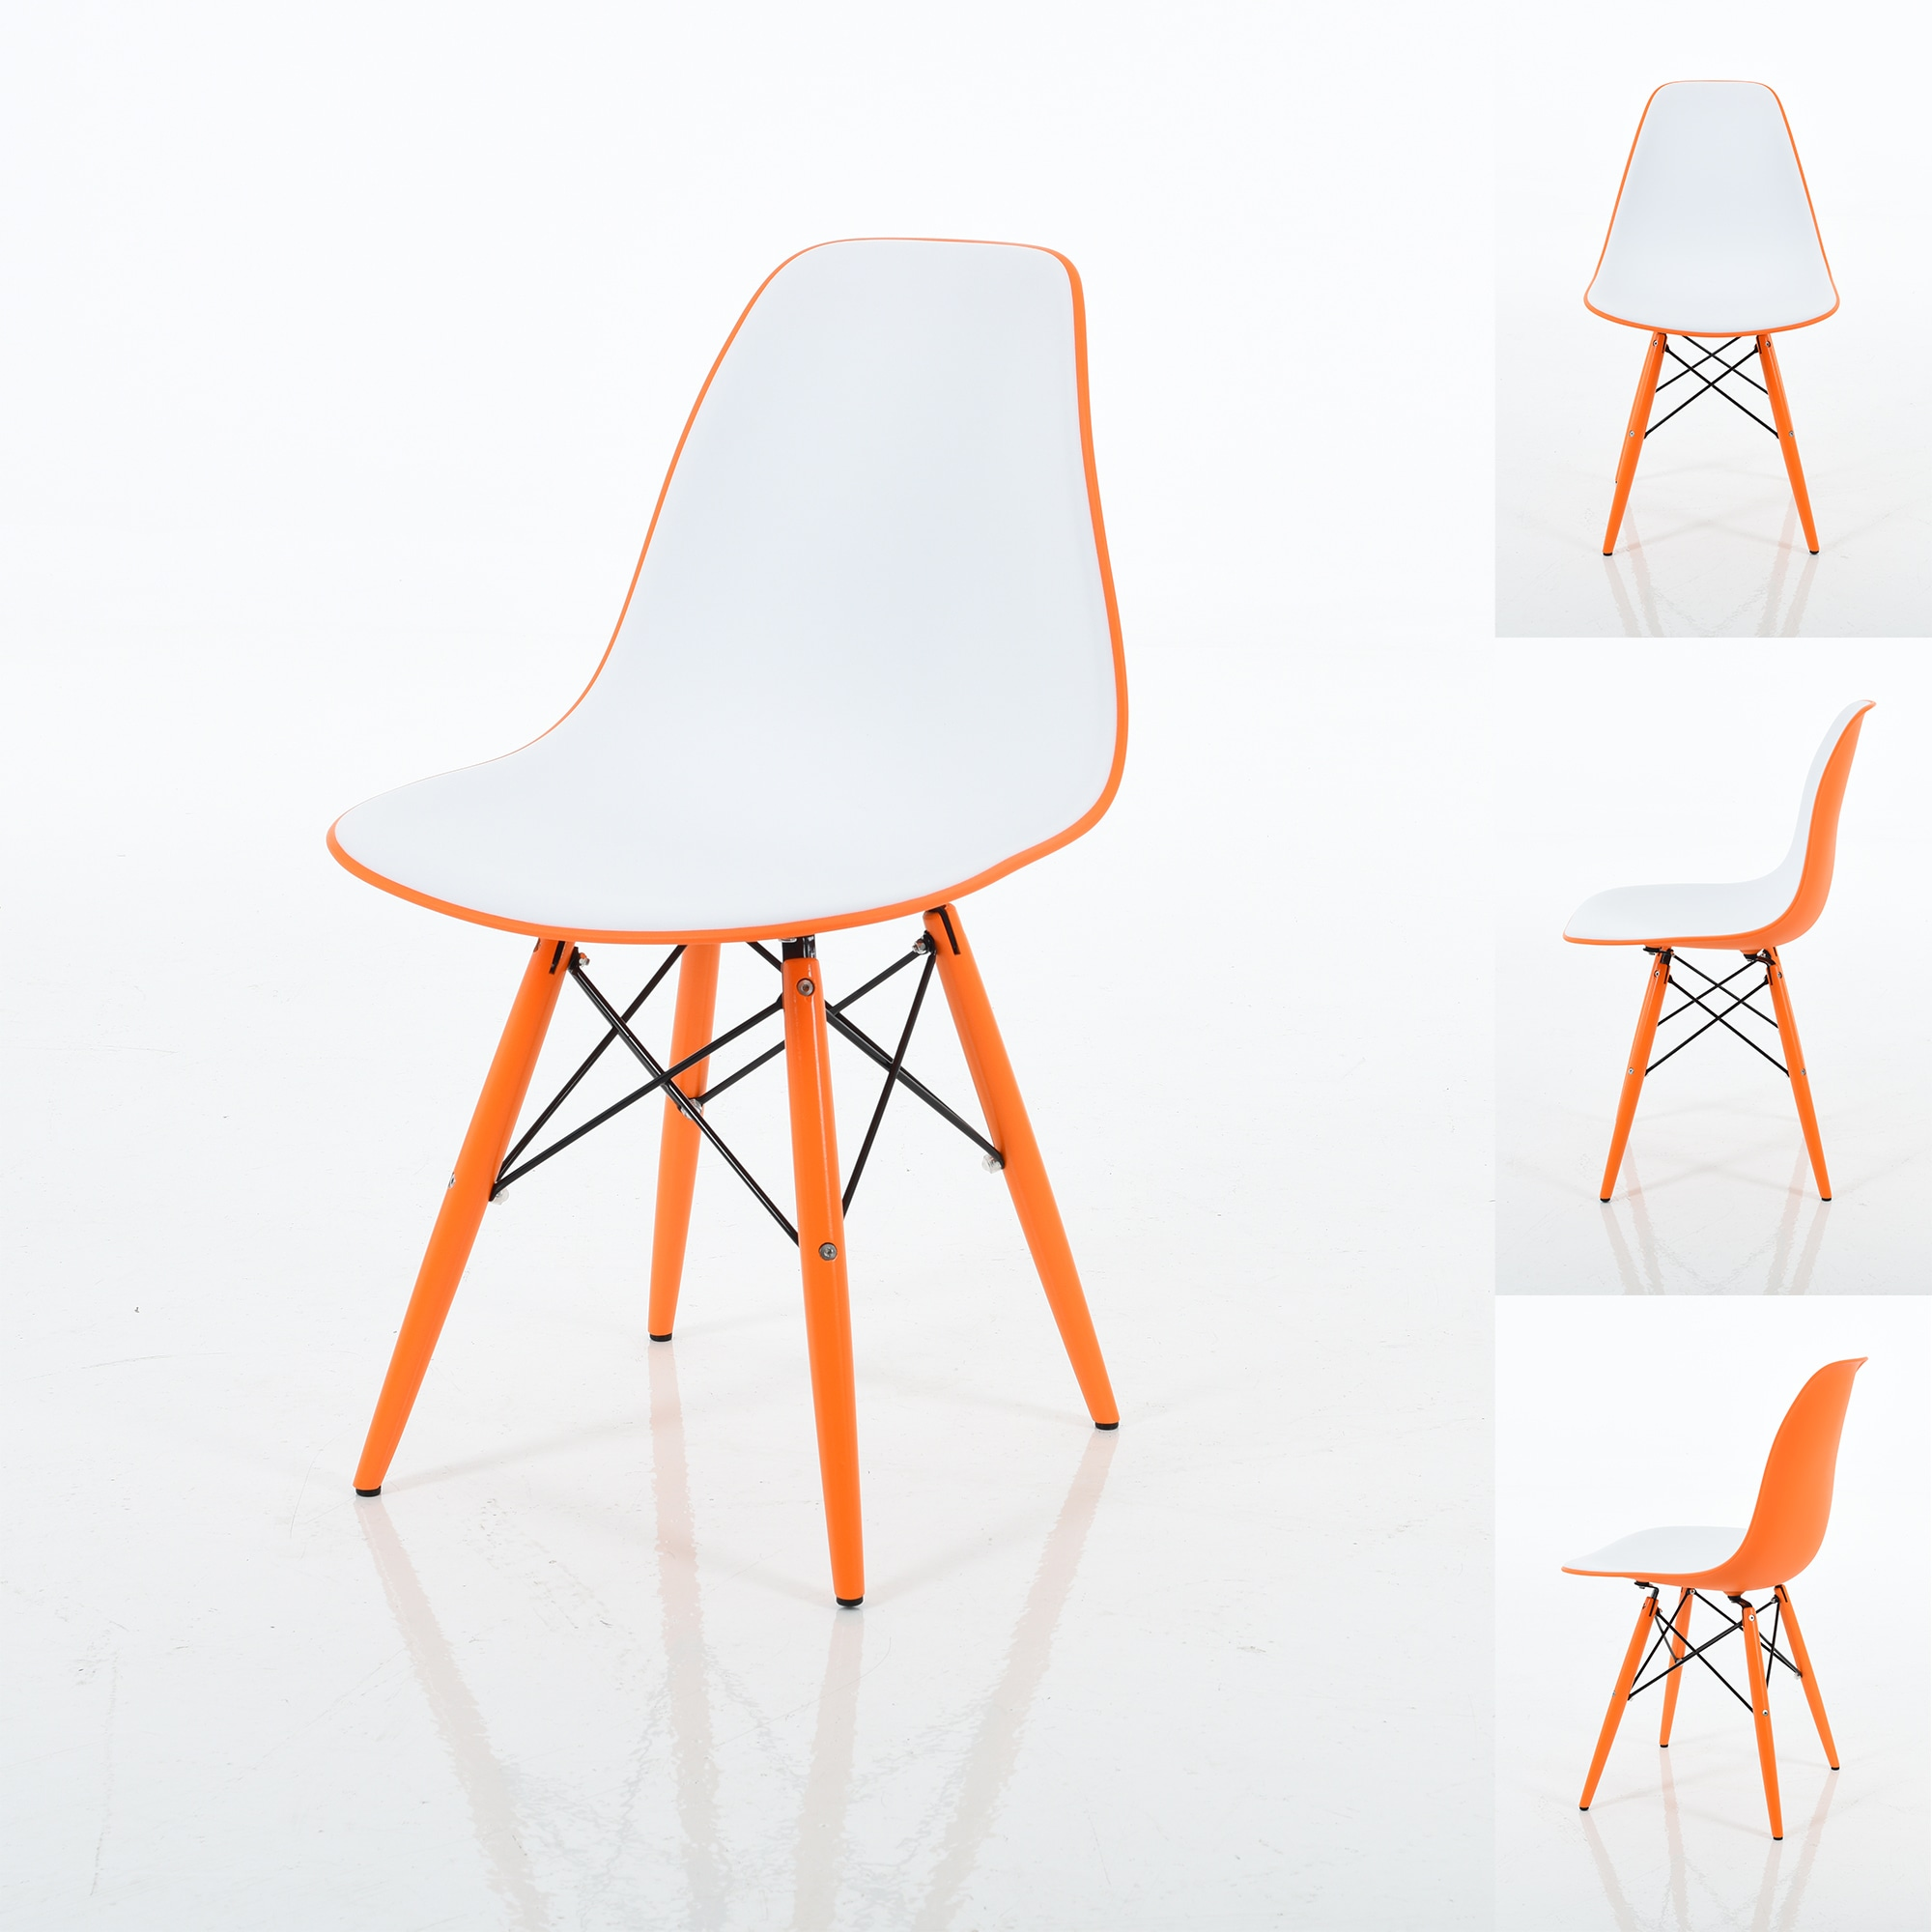 Fabulous Branwen Two Toned Polypropylene Dining Chairs With Wood Legs Set Of 2 Gmtry Best Dining Table And Chair Ideas Images Gmtryco